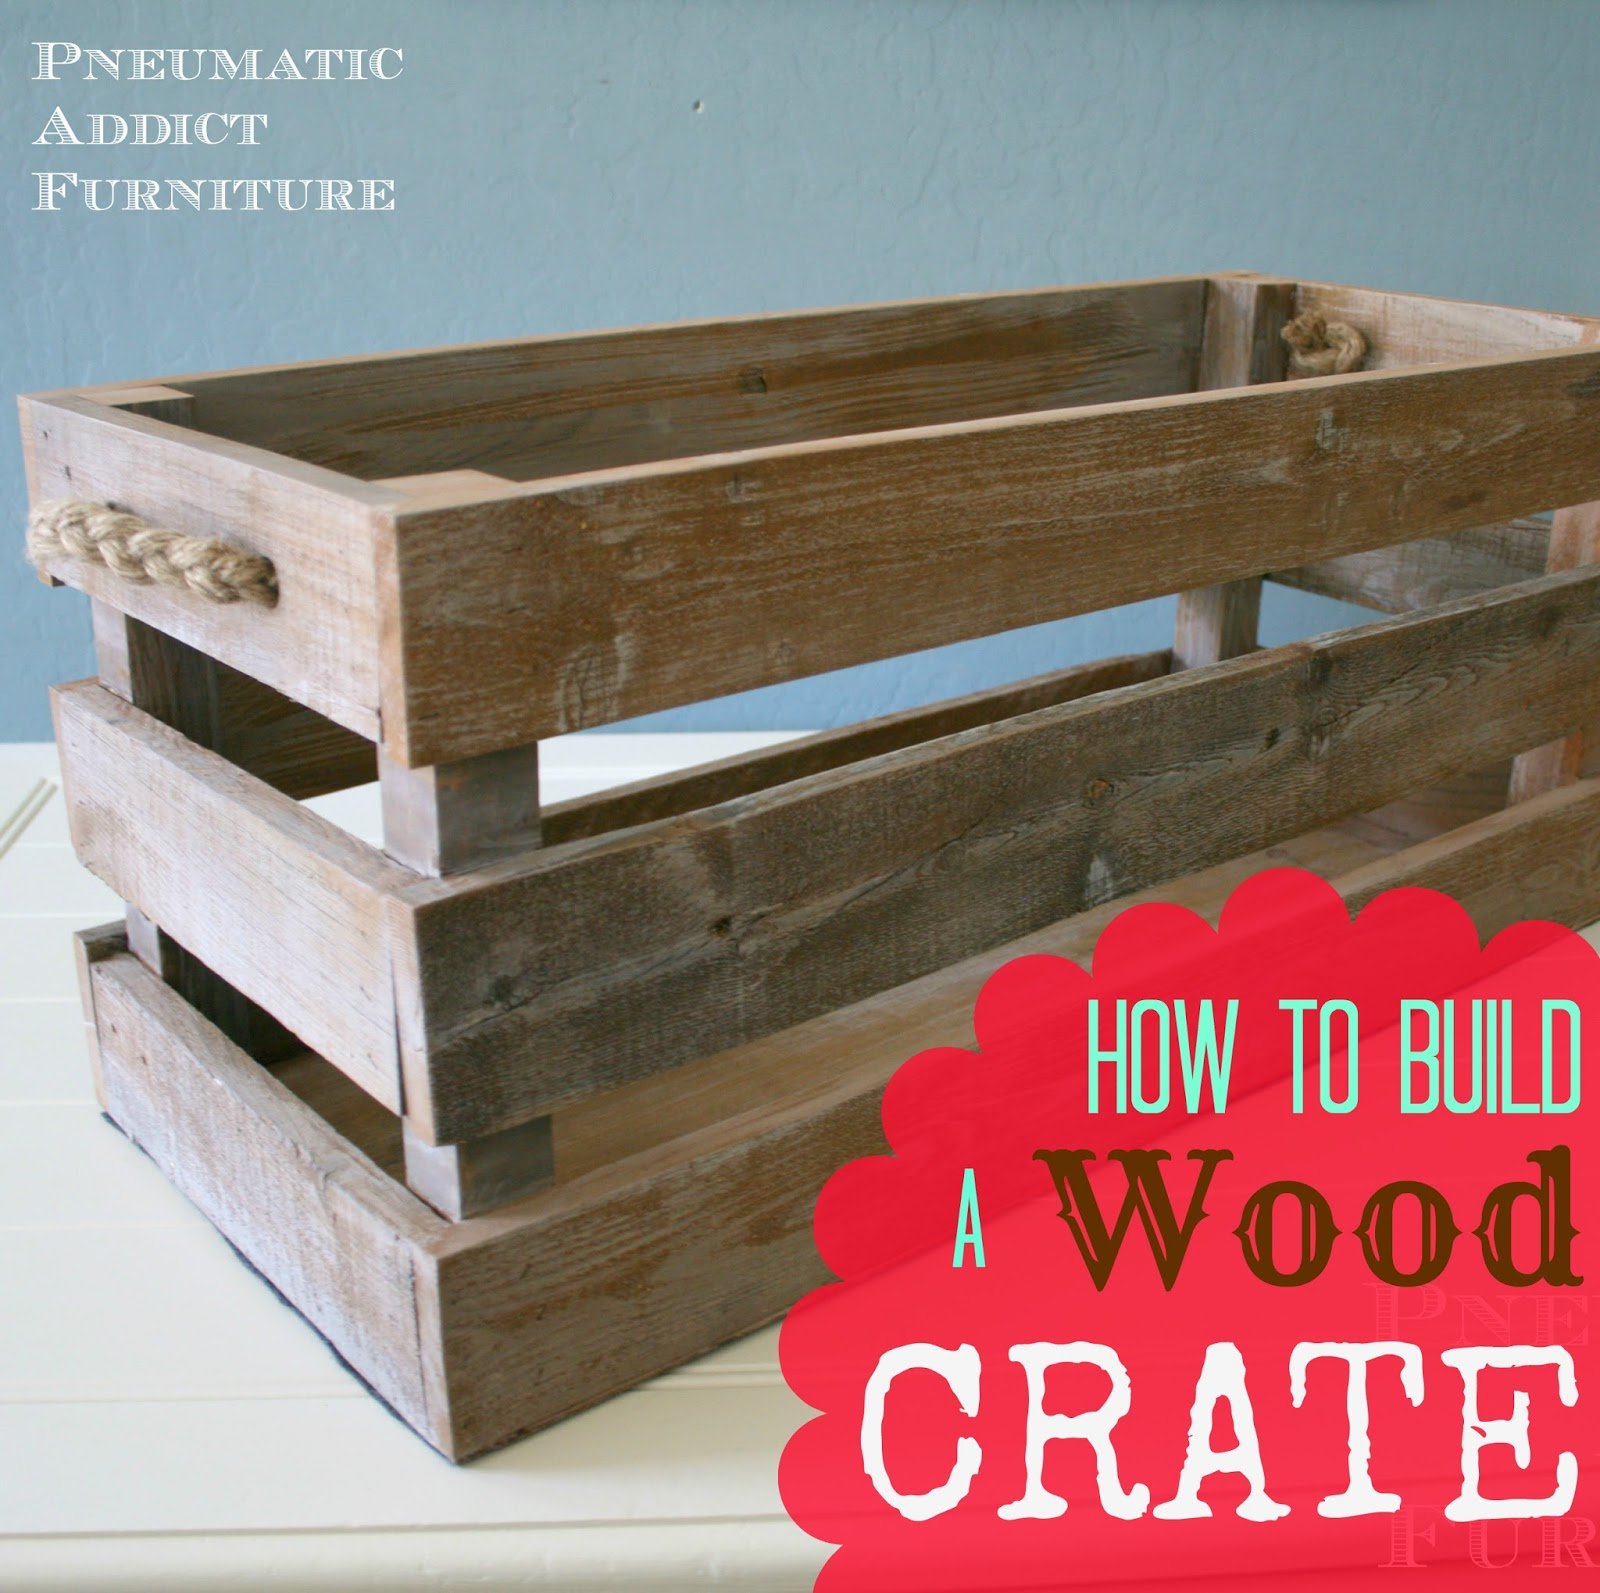 How To Build A Wood Crate Pneumatic Addict